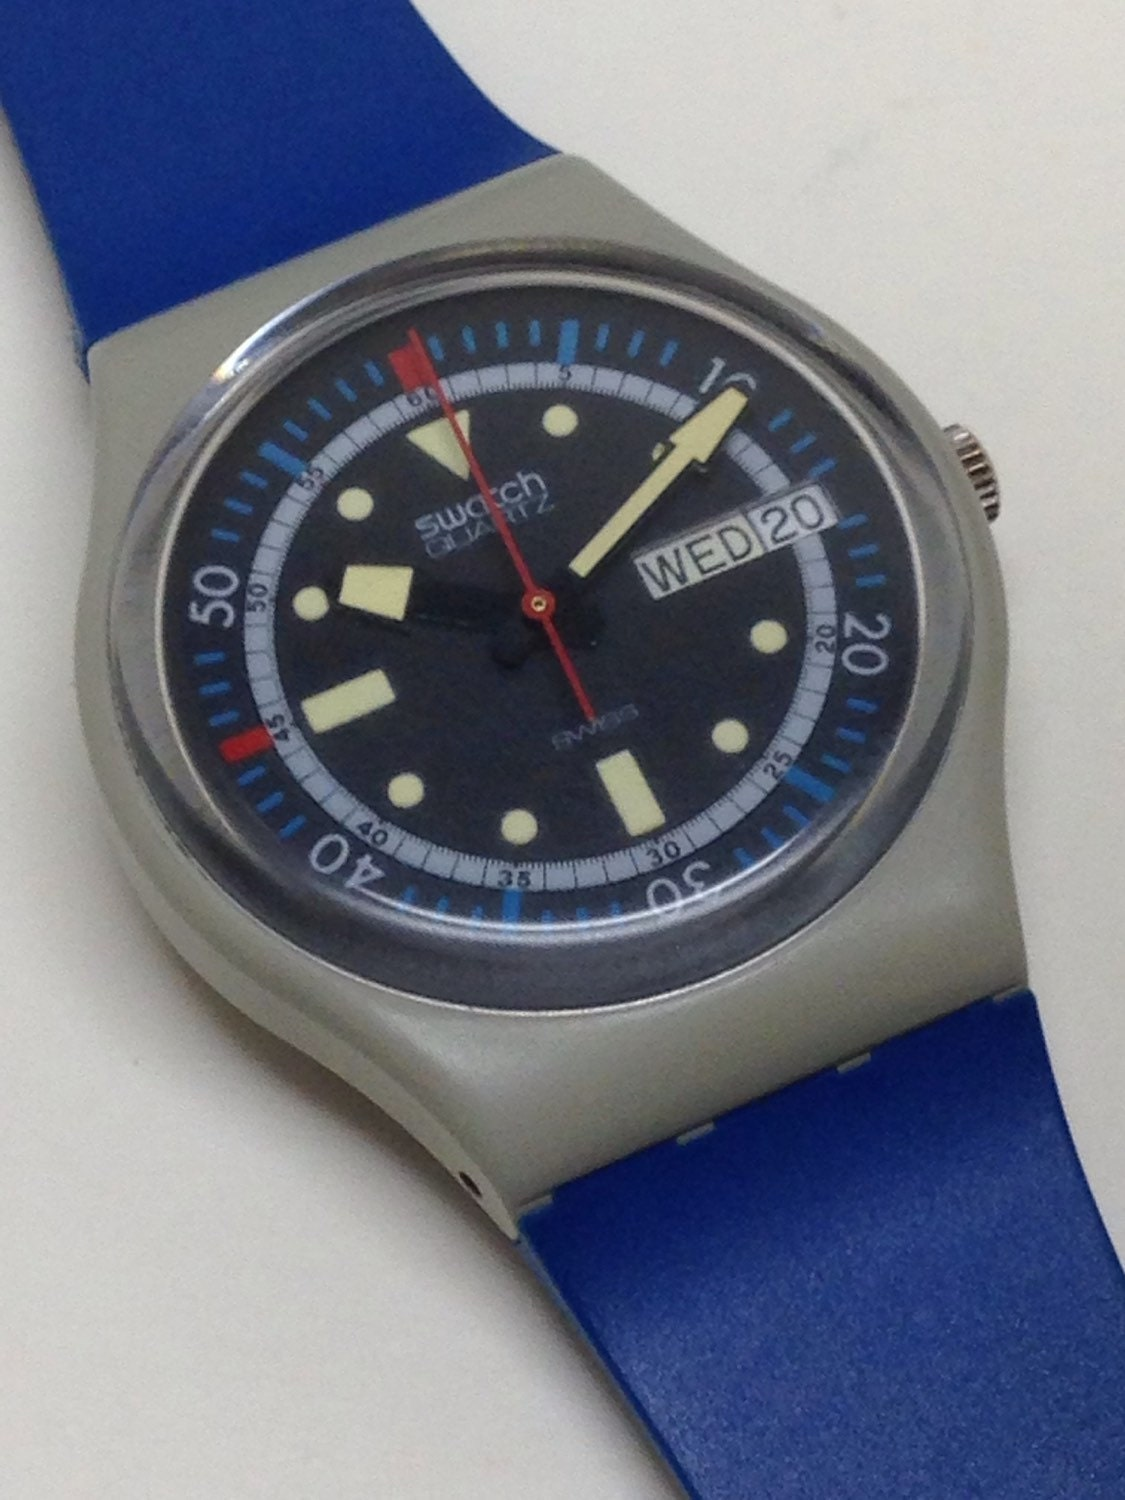 Vintage swatch watch calypso diver gm701 1985 by thatissofunny - Swatch dive watch ...